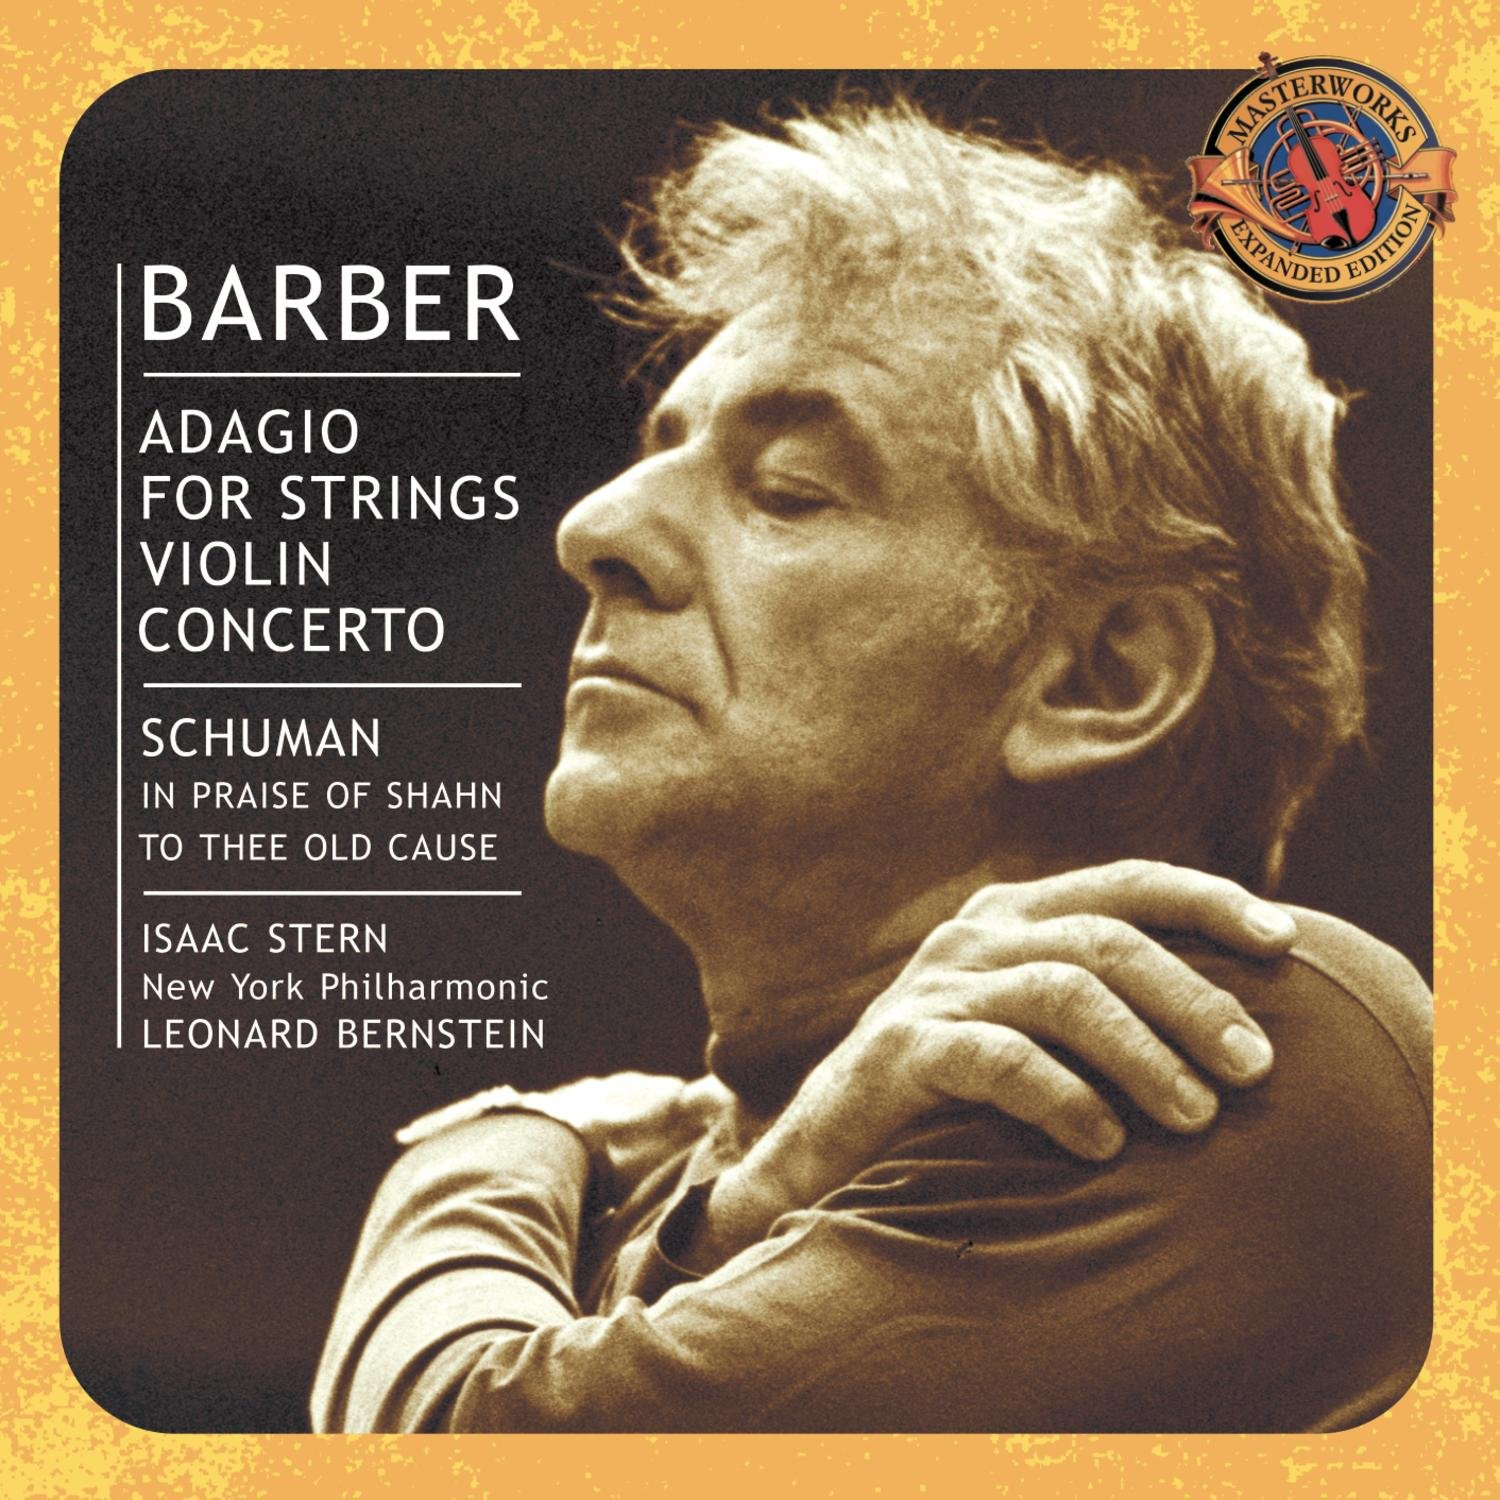 Barber: Adagio for Strings; Violin Concerto / Schuman / Ives / Copland ~ Bernstein / Stern